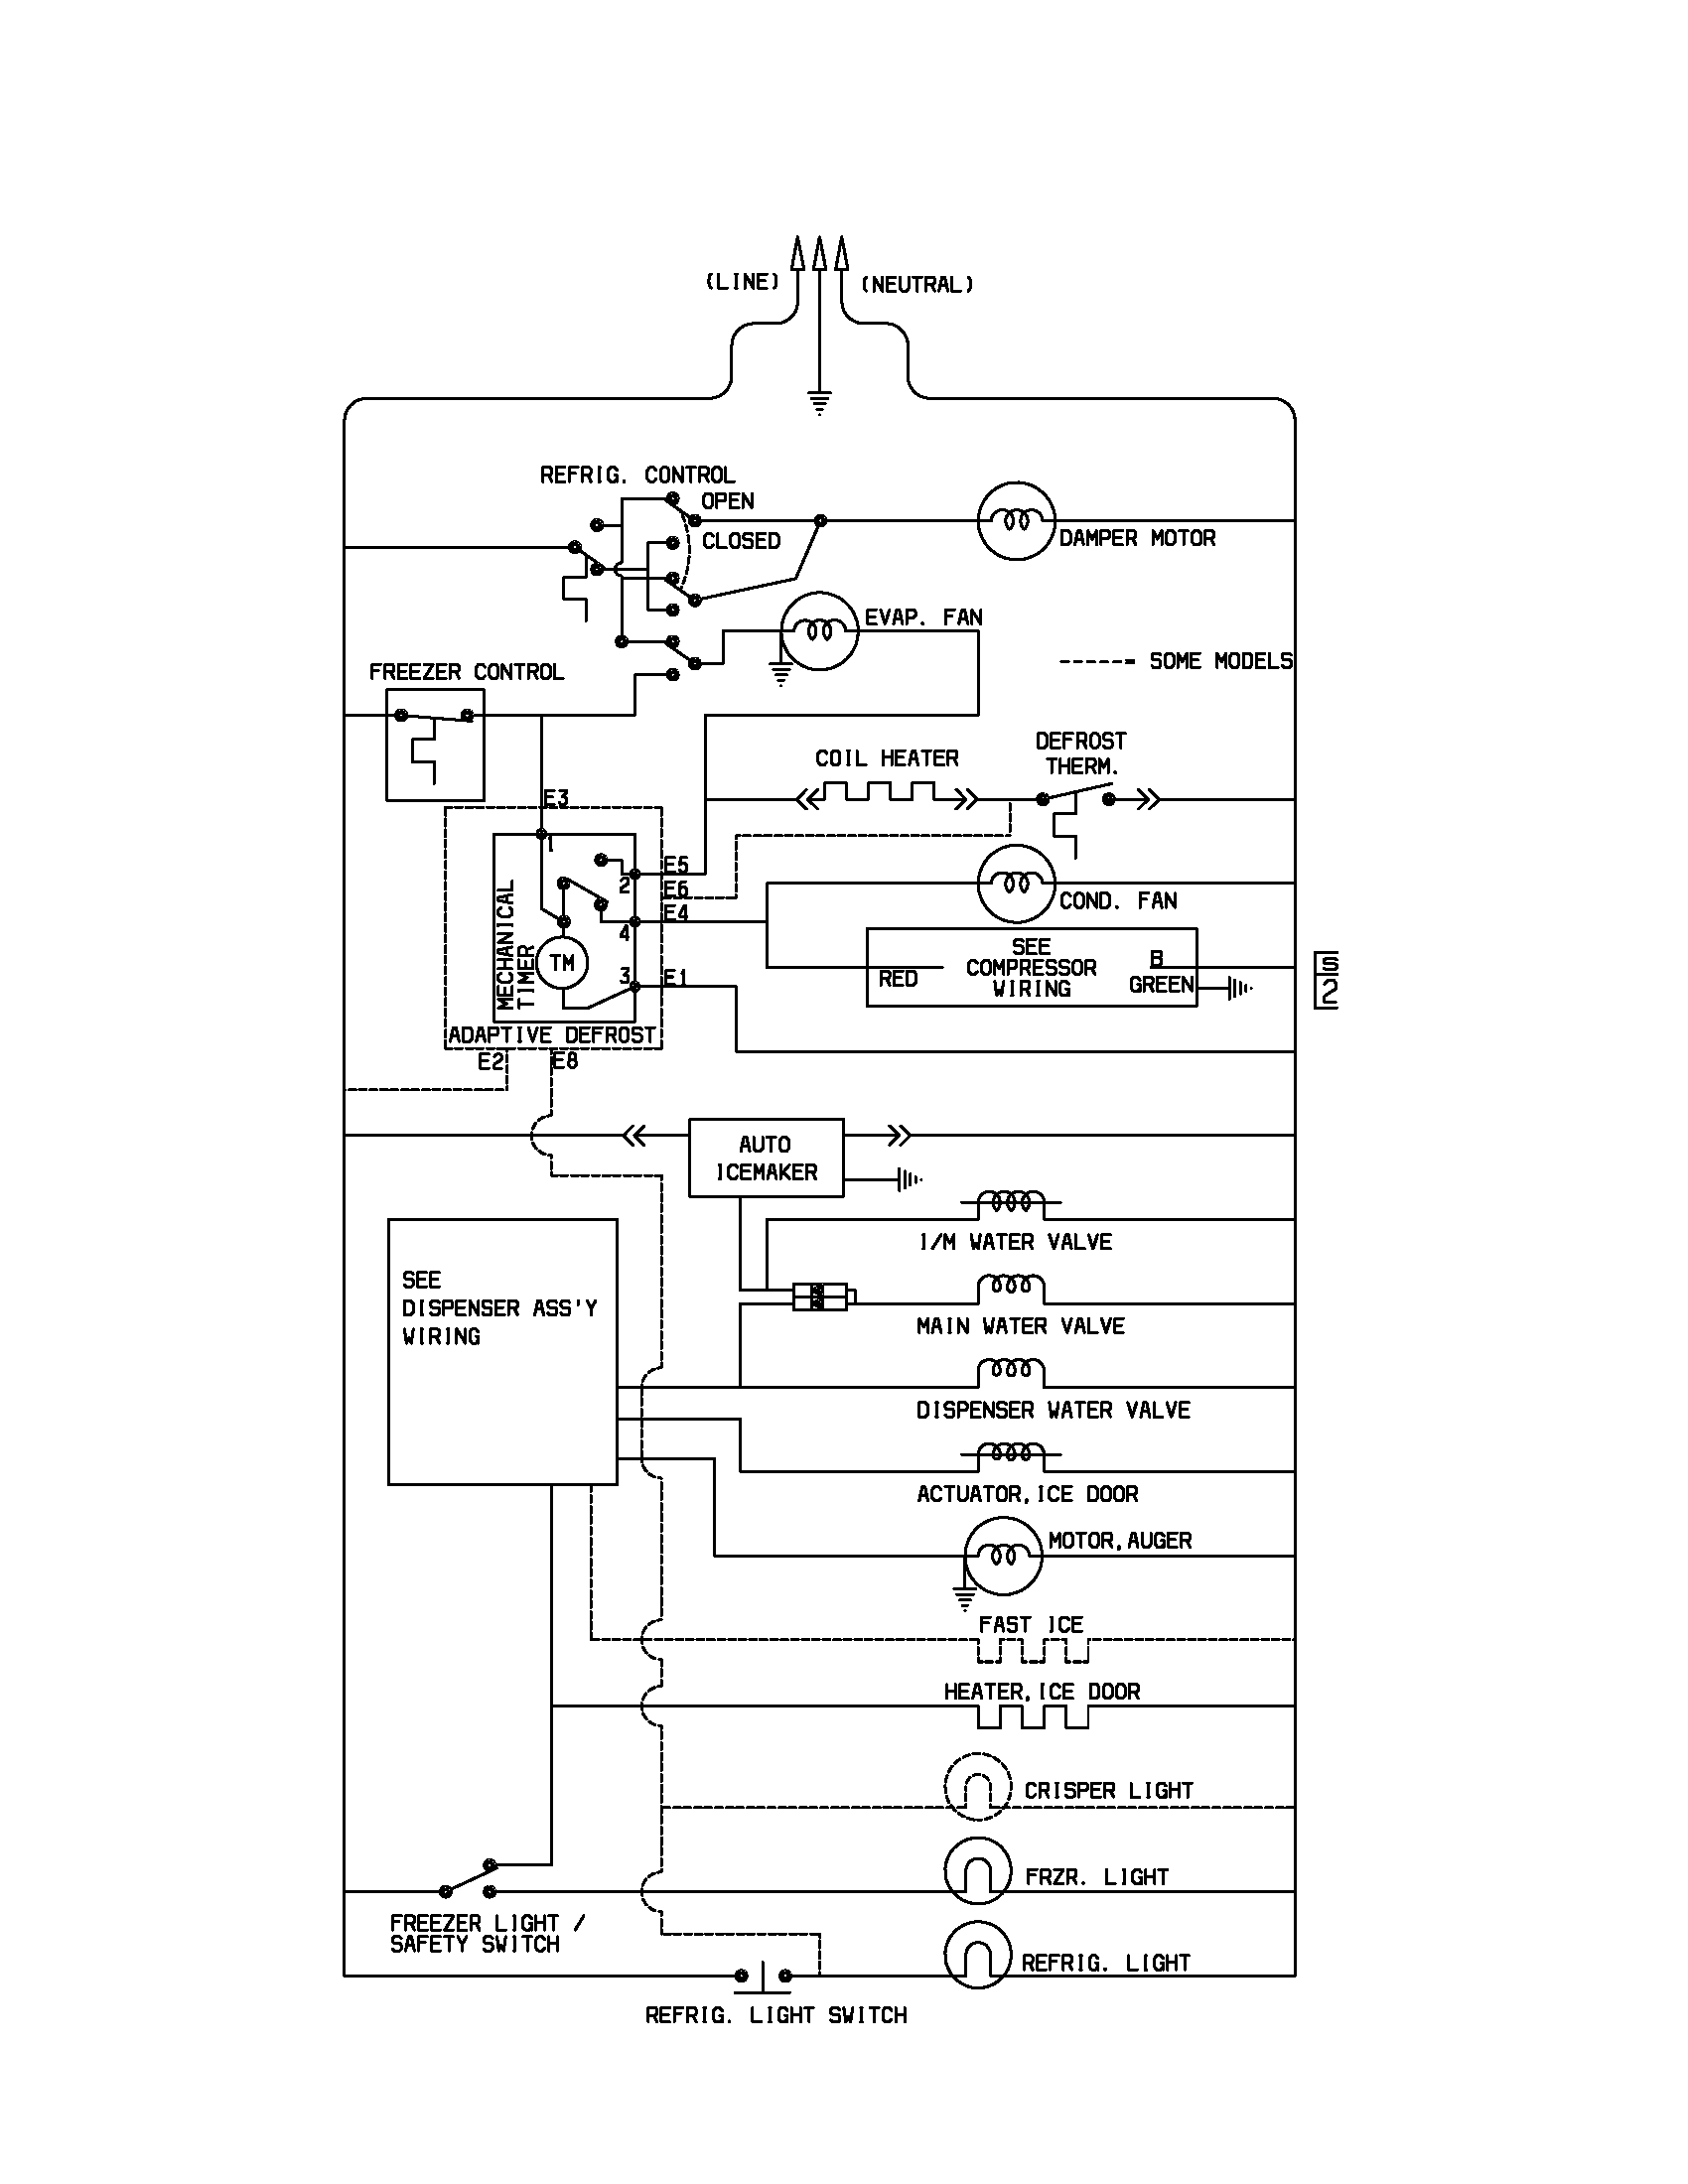 [DIAGRAM] Heatcraft Walk In Zer Wiring Diagram FULL